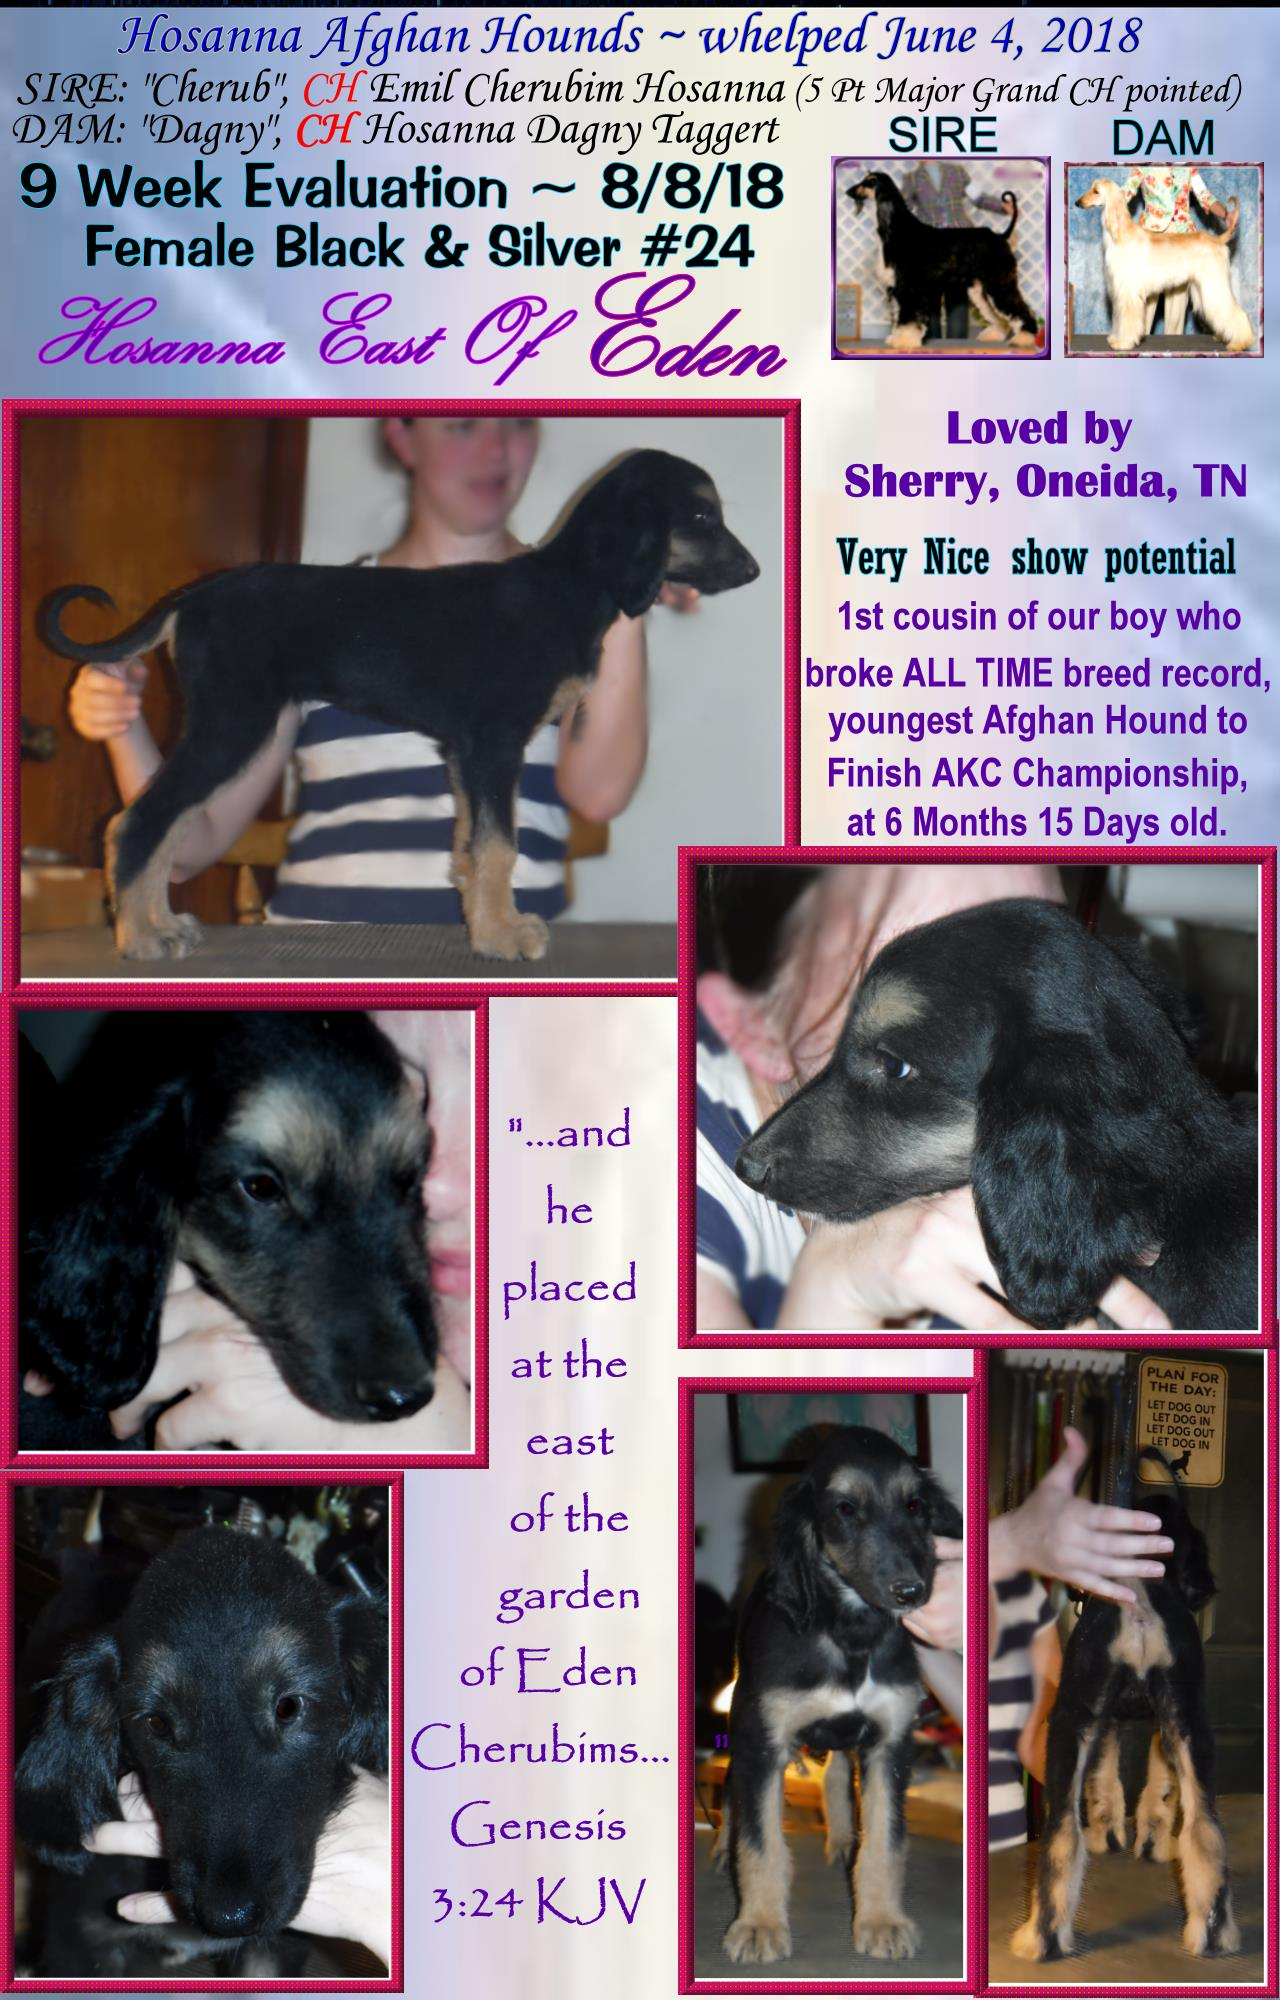 AKC Litter puppy evaluation photos 9 week old afghan hounds puppies